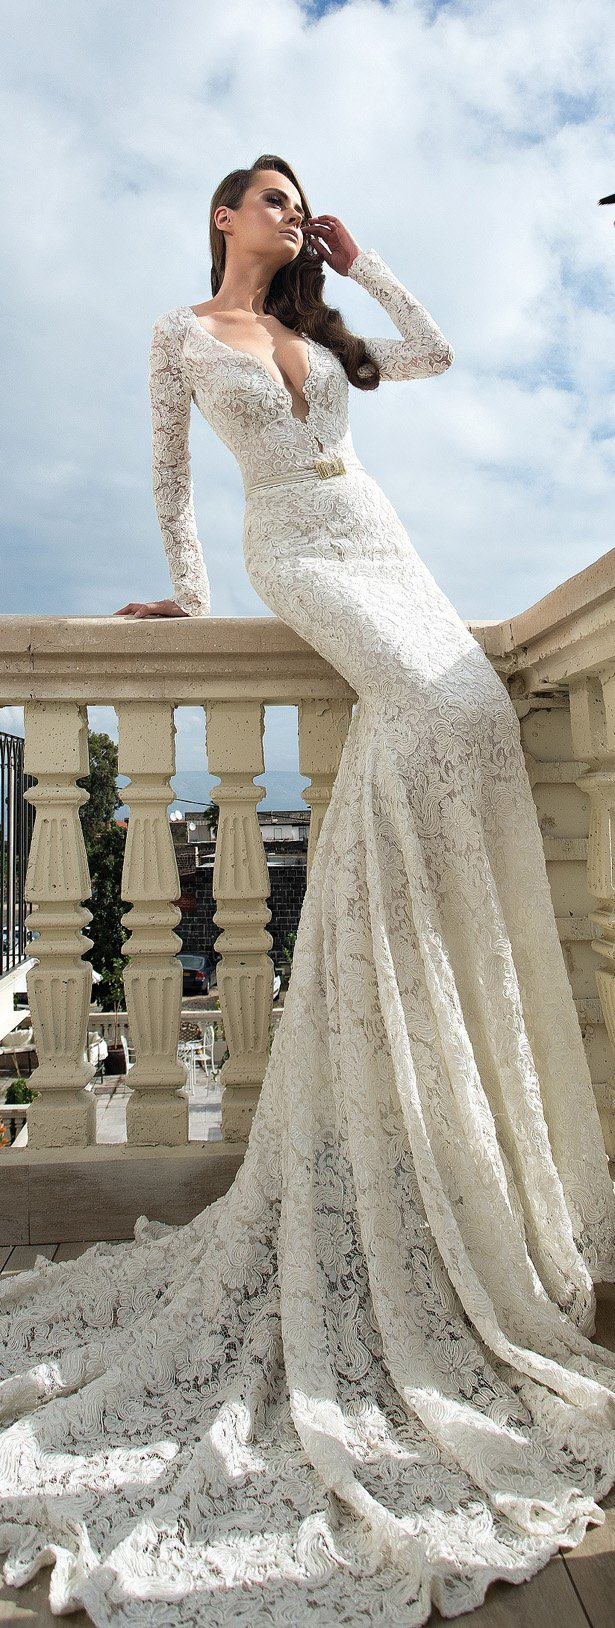 shabiisrael-2015-wedding-dresses Gorgeous Haute Couture 2015 Wedding Dresses By Shabi & Israel Gorgeous Haute Couture 2015 Wedding Dresses By Shabi & Israel shabiisrael 2015 wedding dresses6